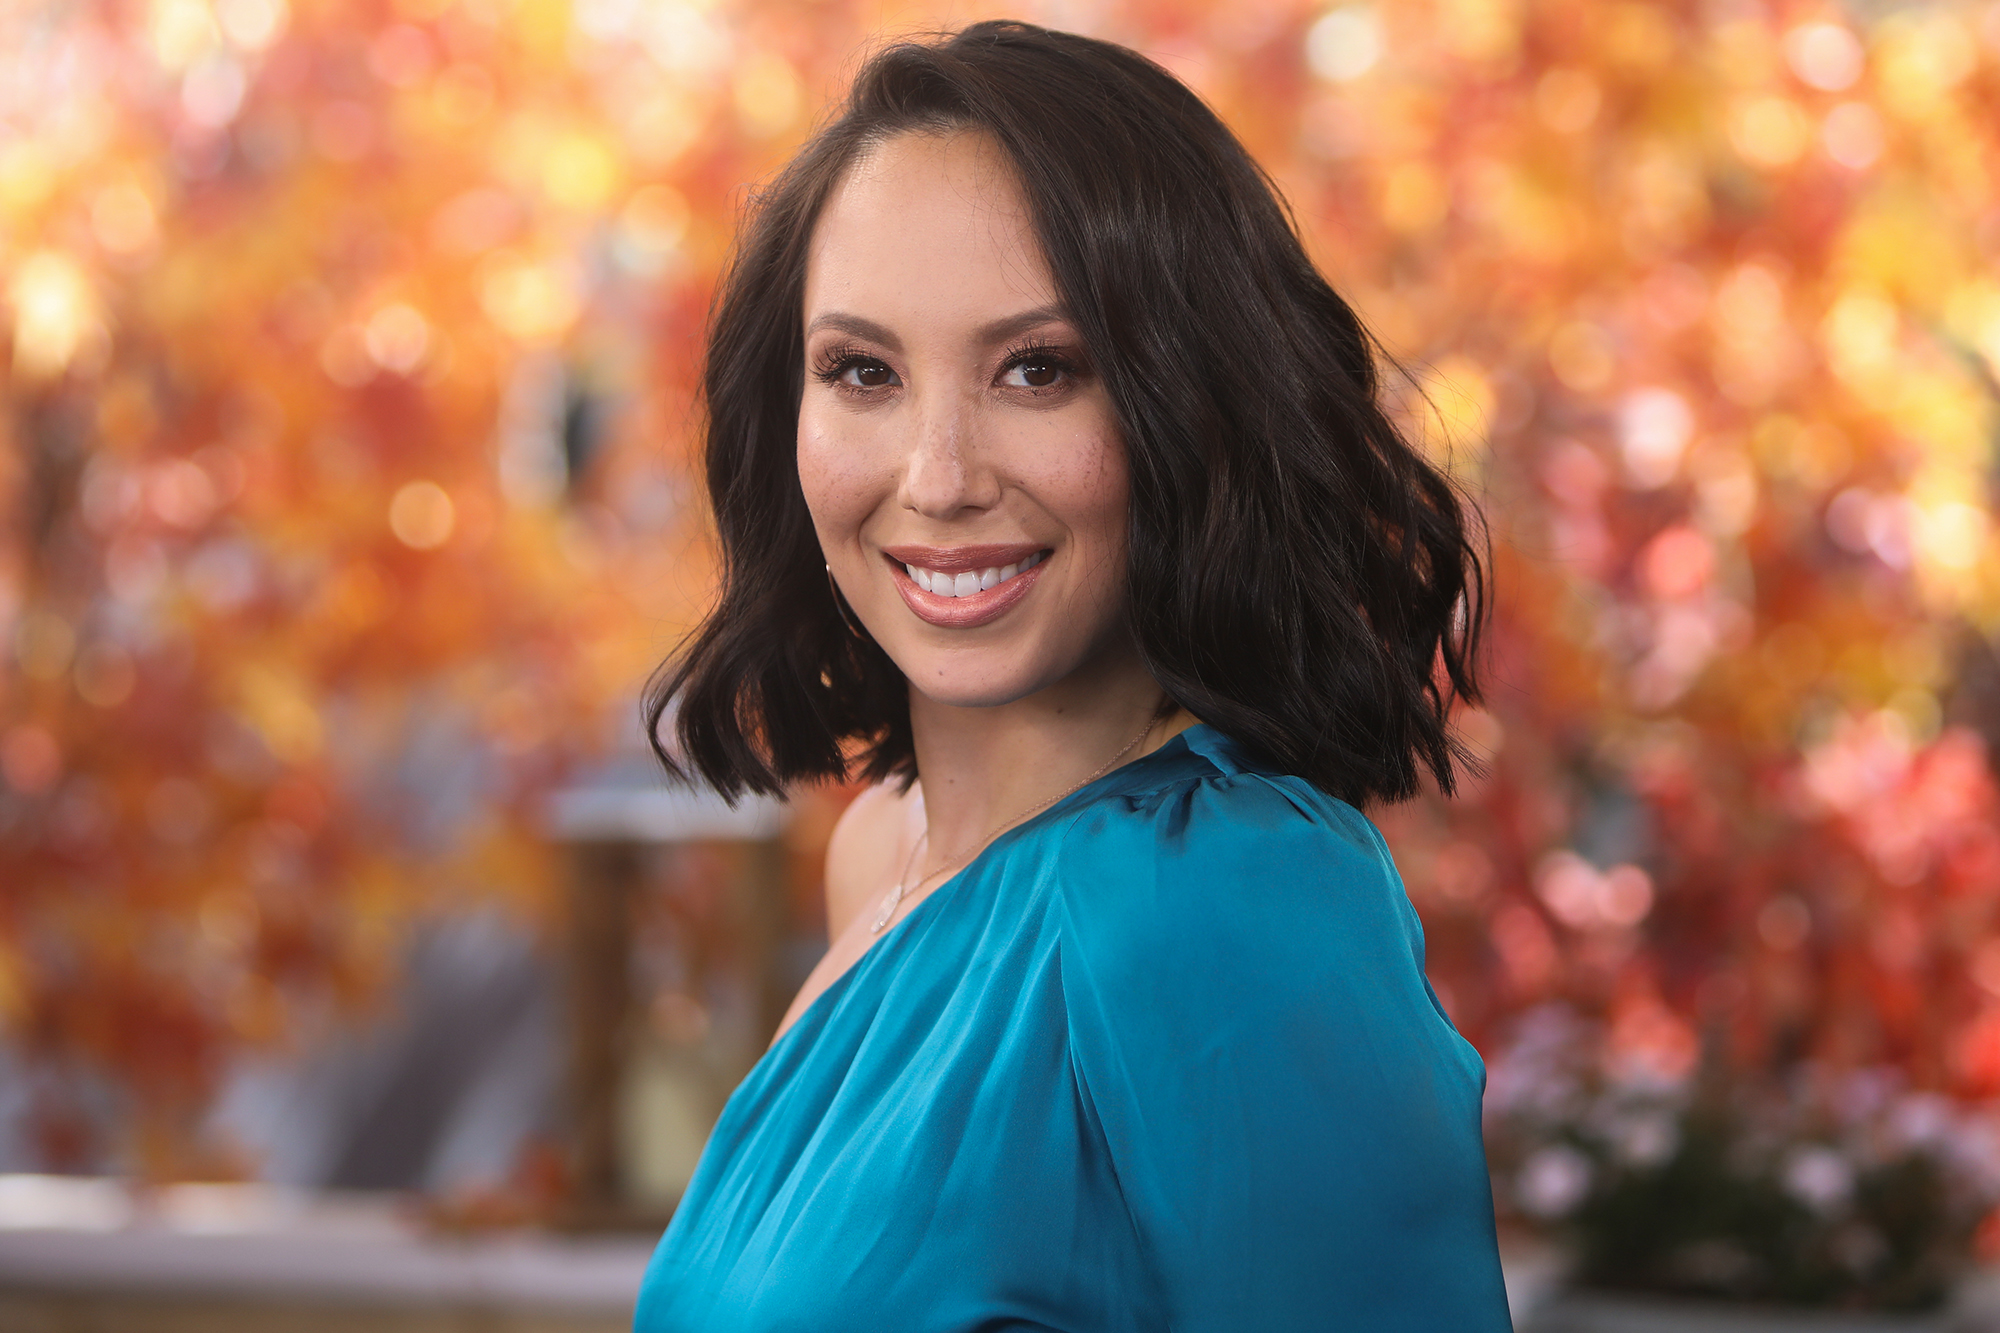 'Dancing with the Stars' pro Cheryl Burke suffers head injury